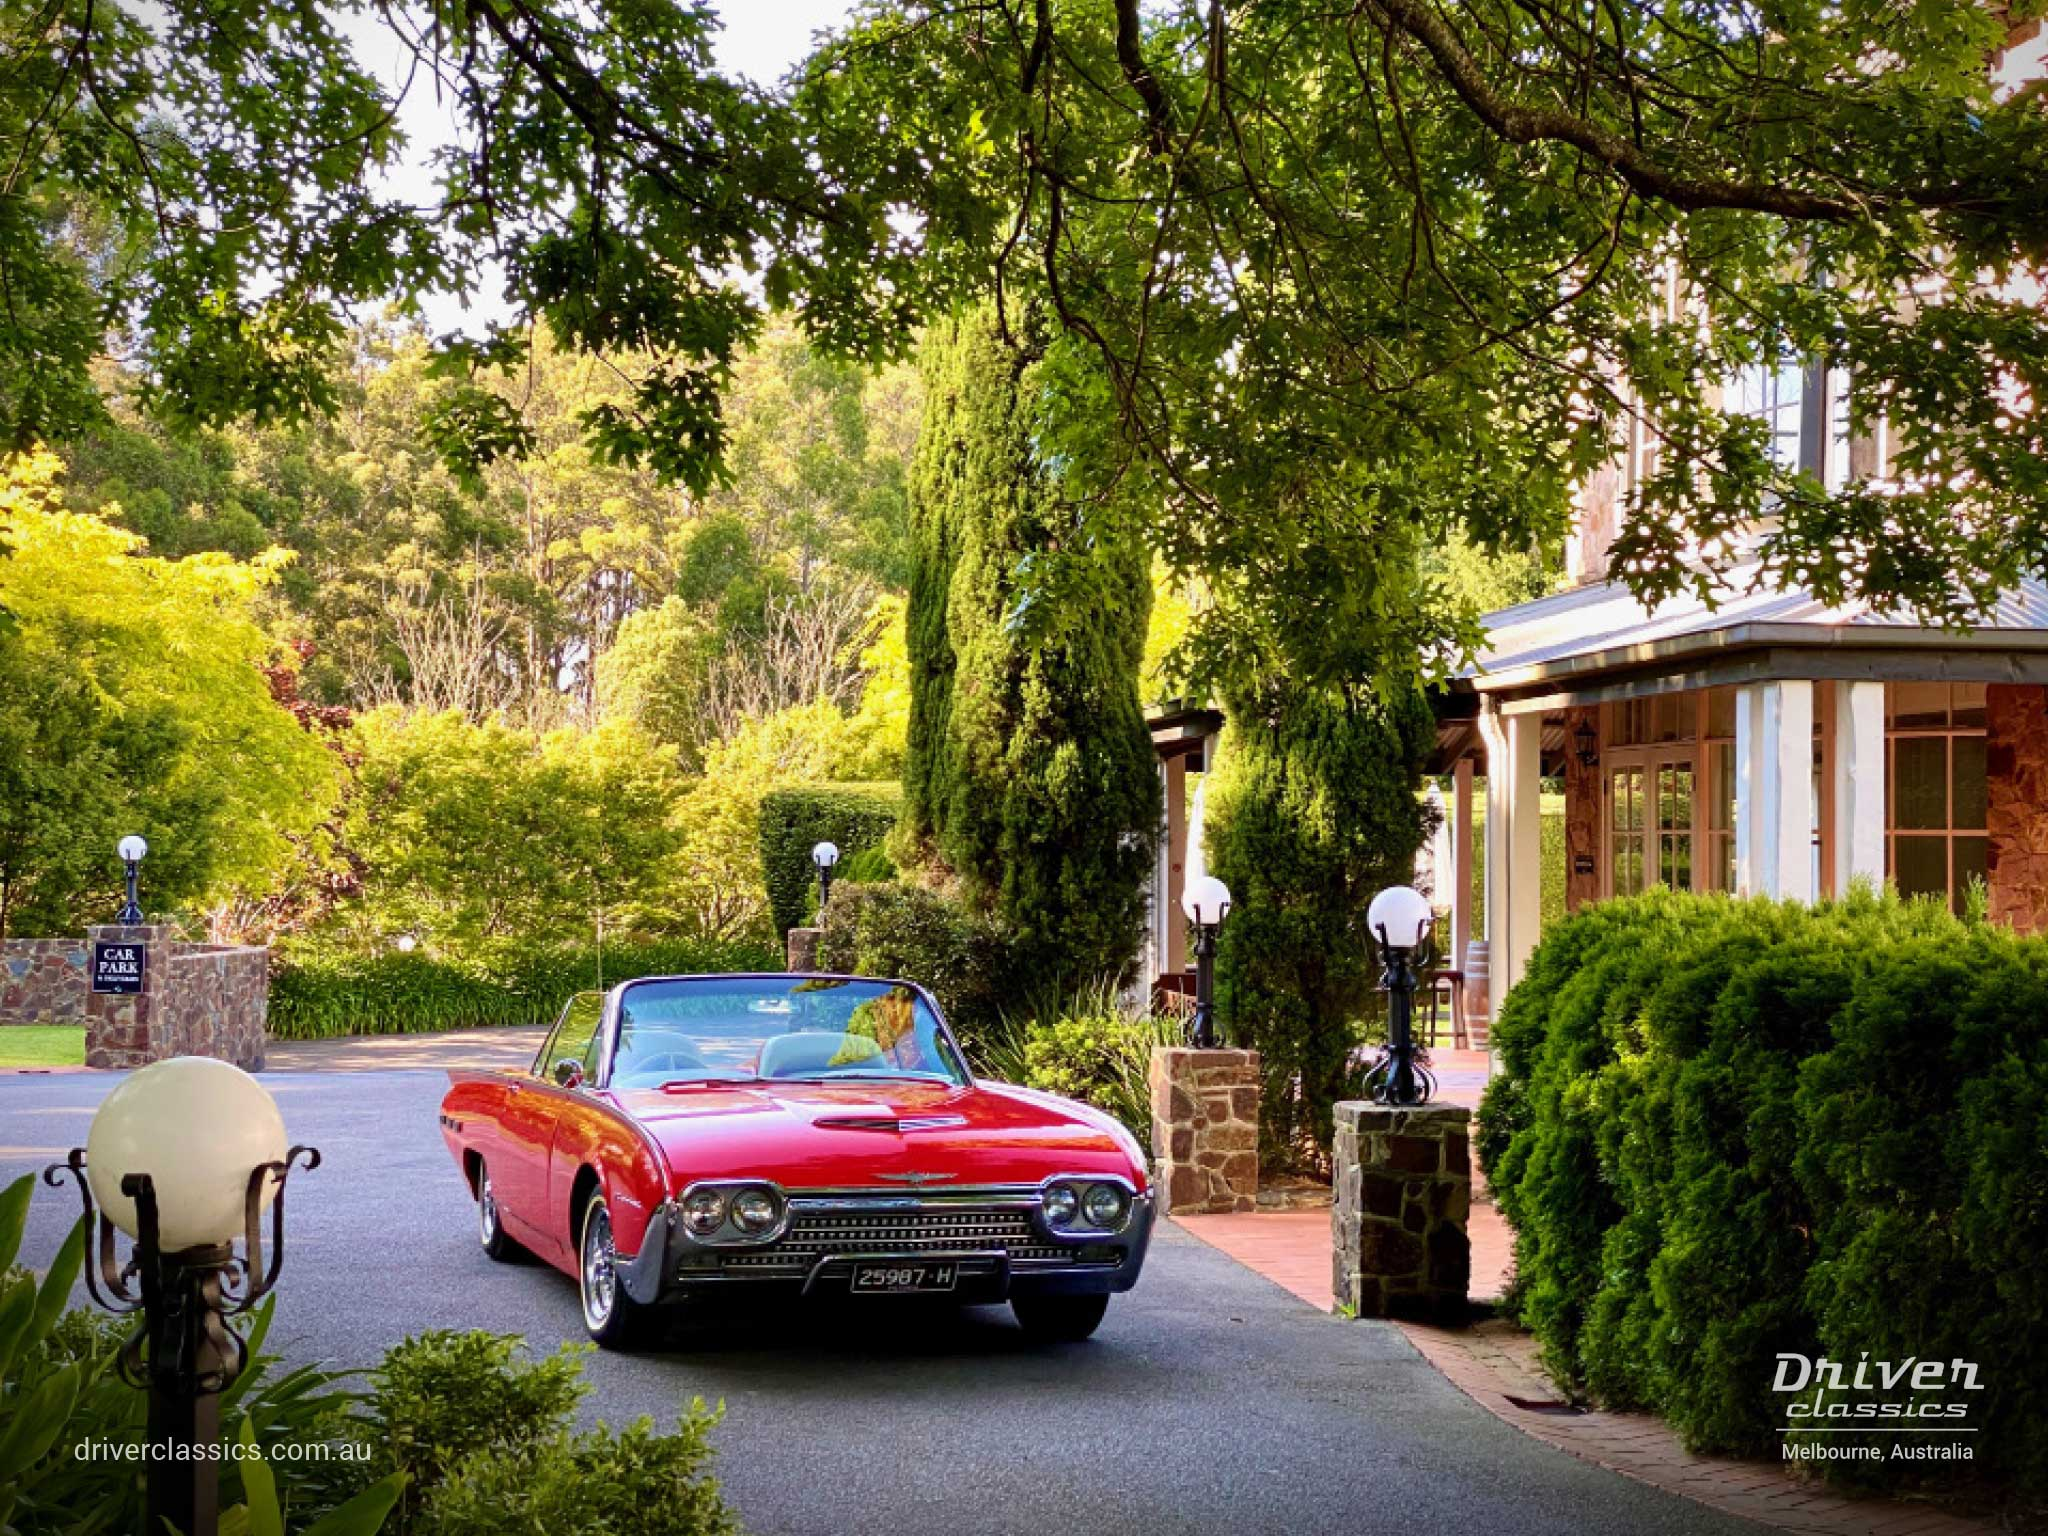 Ford Thunderbird Roadster 1962 version, front, dandenong ranges, Photo taken Dec 2019